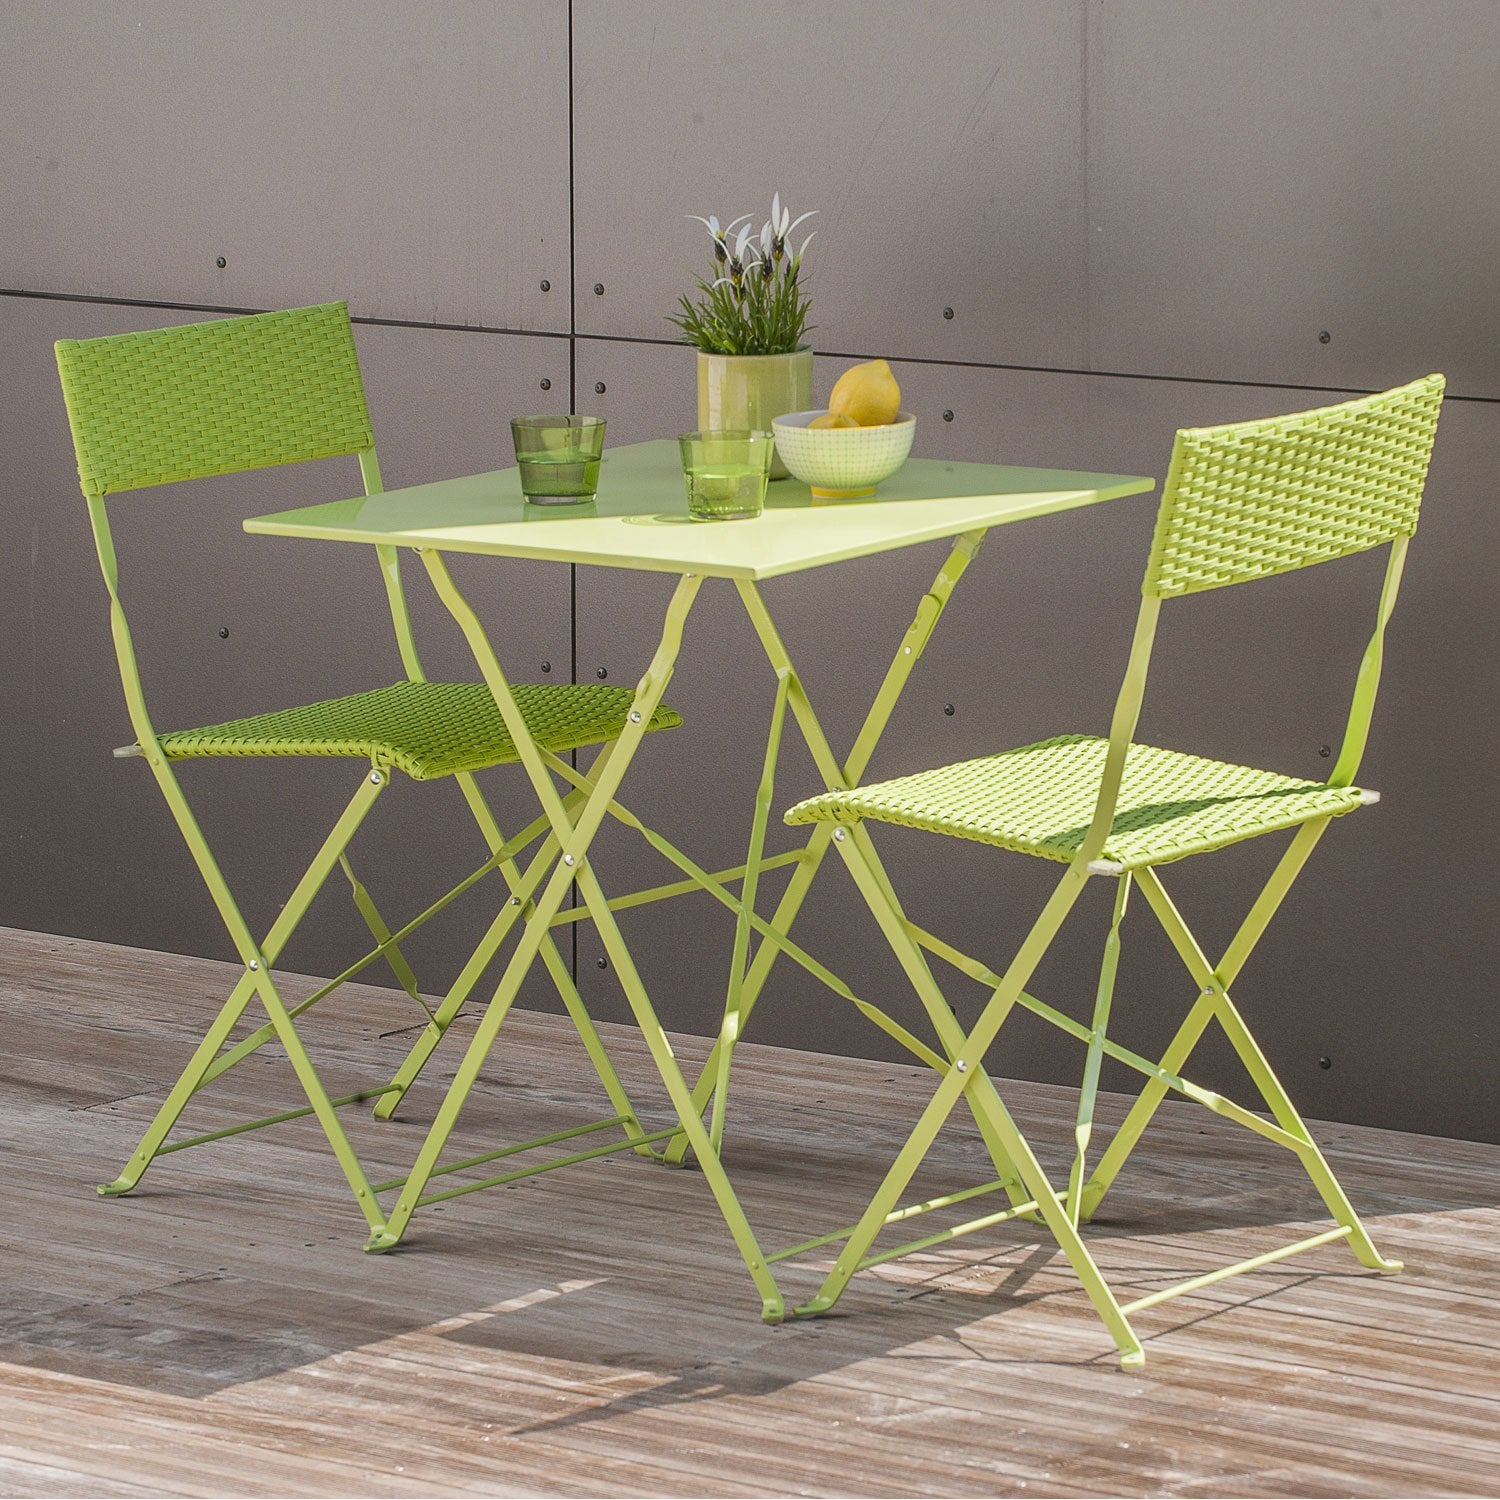 salon de jardin mezzo acier vert 1 table gueridon 2. Black Bedroom Furniture Sets. Home Design Ideas